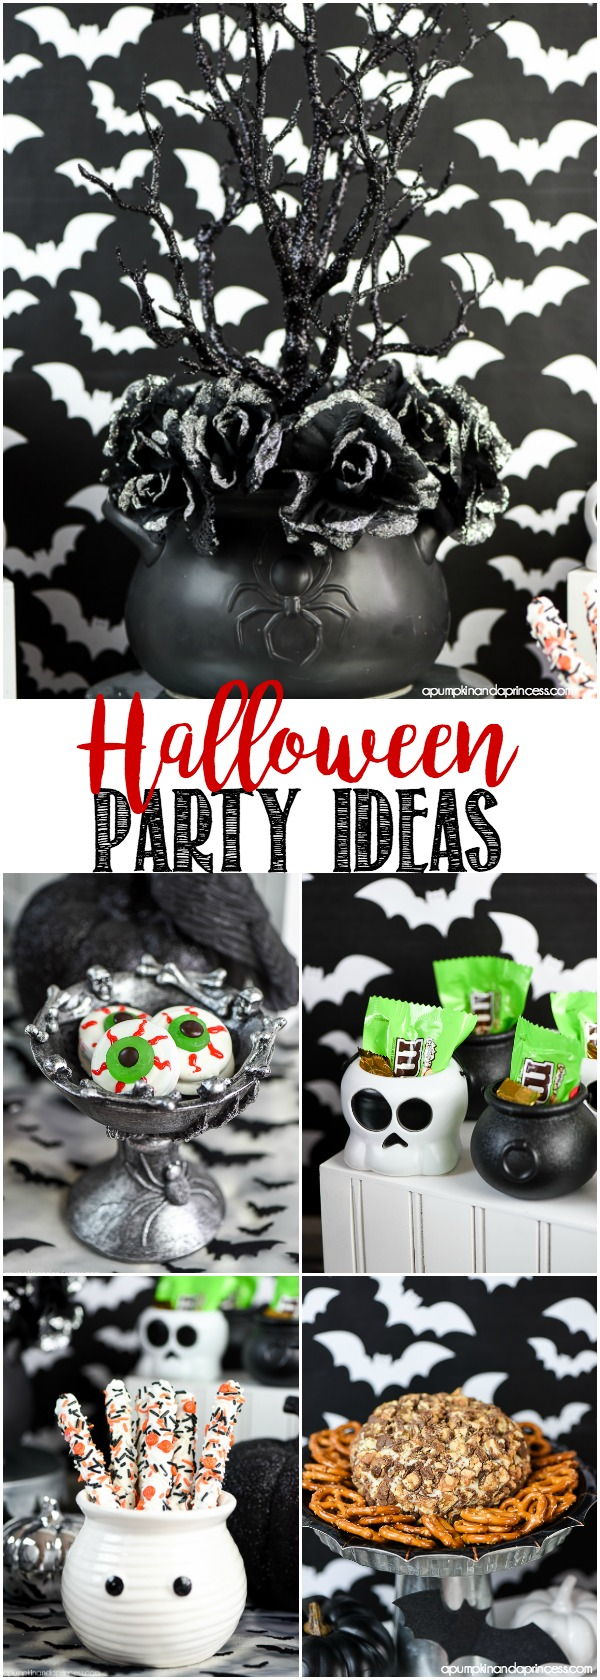 Halloween party ideas food decorations party favors for Halloween party favor ideas